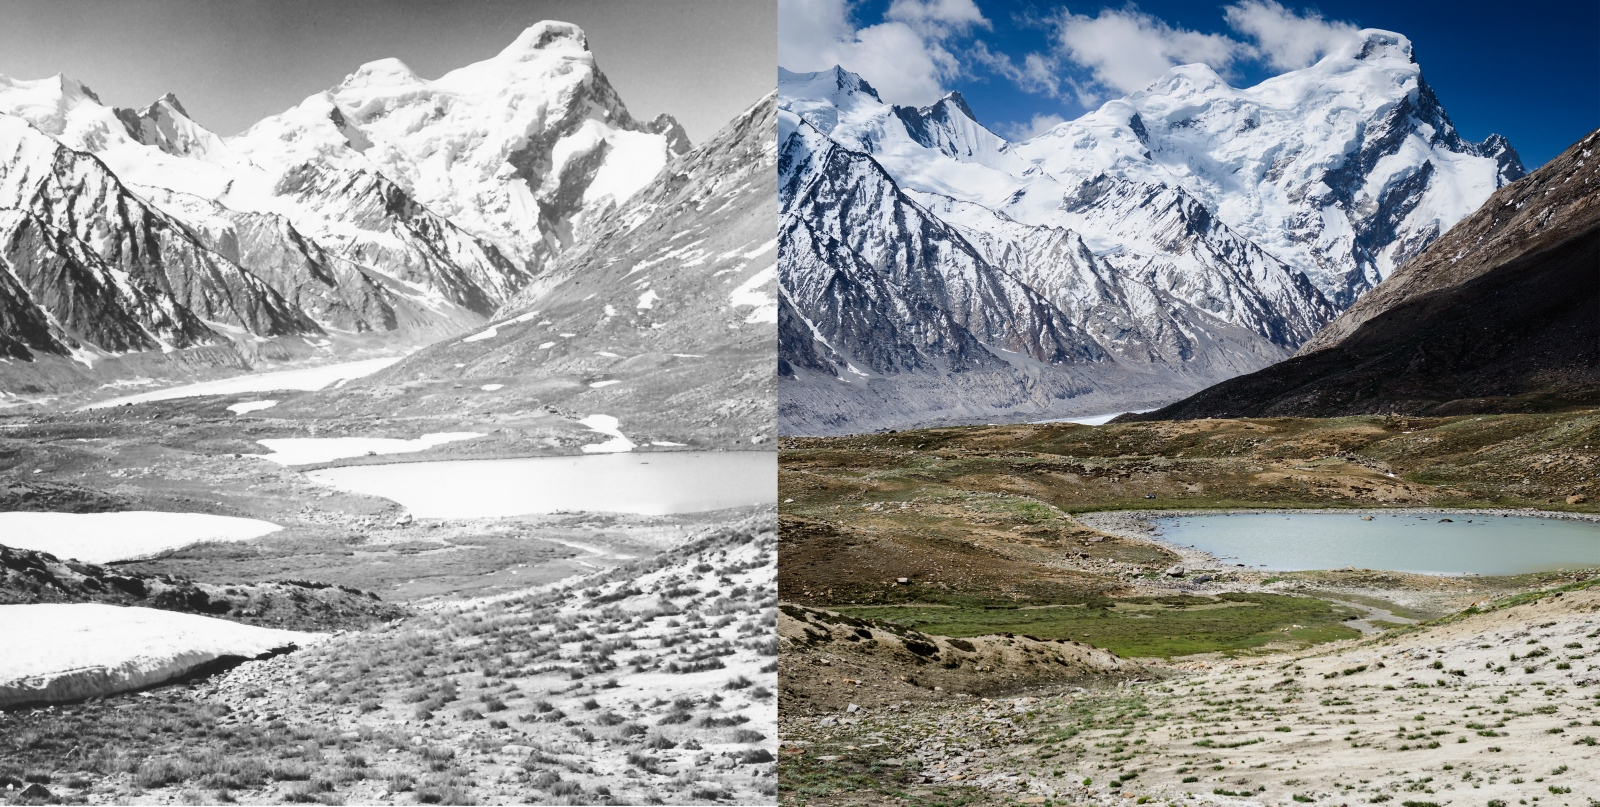 Left: Drang-Drung glacier and glacier lakes in the Penzi-La Pass of the Zanskar region, during the summer of 1980. Historical photo taken by German alpinist Dieter Kirch. Right: Drang-Drung glacier and glacier lakes in the Penzi-La Pass of the Zanskar region, during the summer of 2013. Photo taken by myself, Christopher Rubey using the repeat photography method to help measure ice volume loss over time.